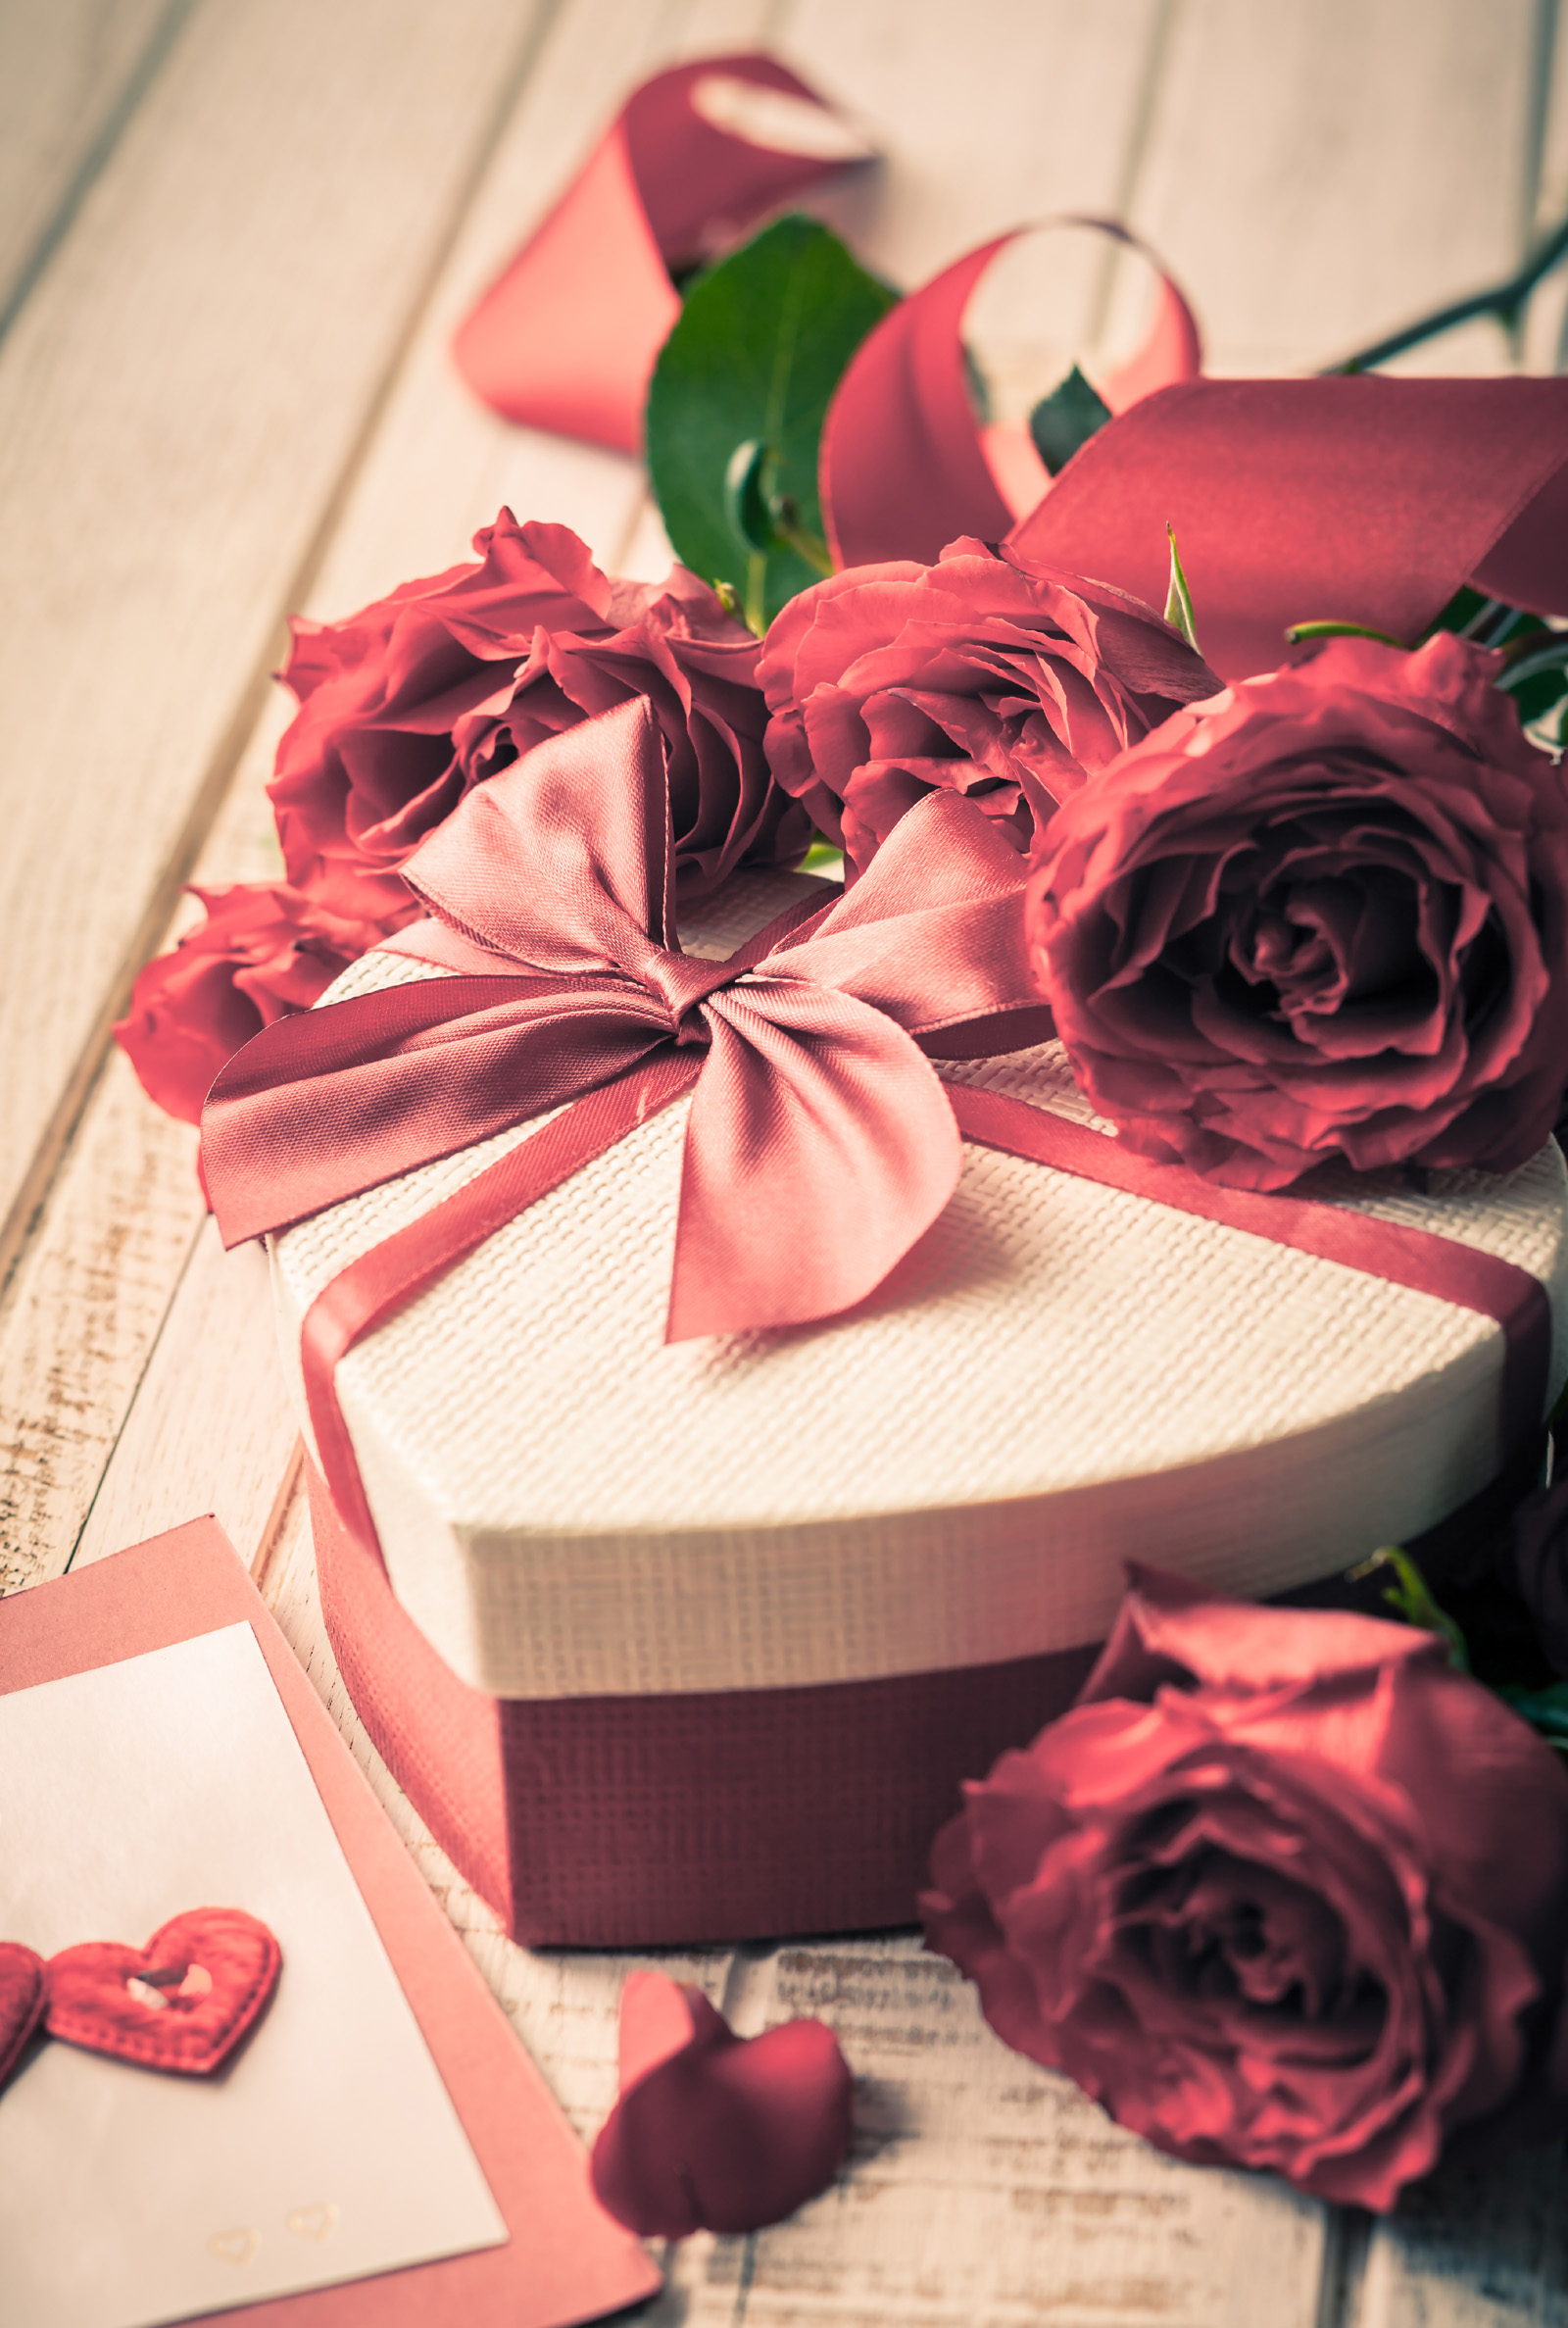 Roses and heart-shaped gift box 51592